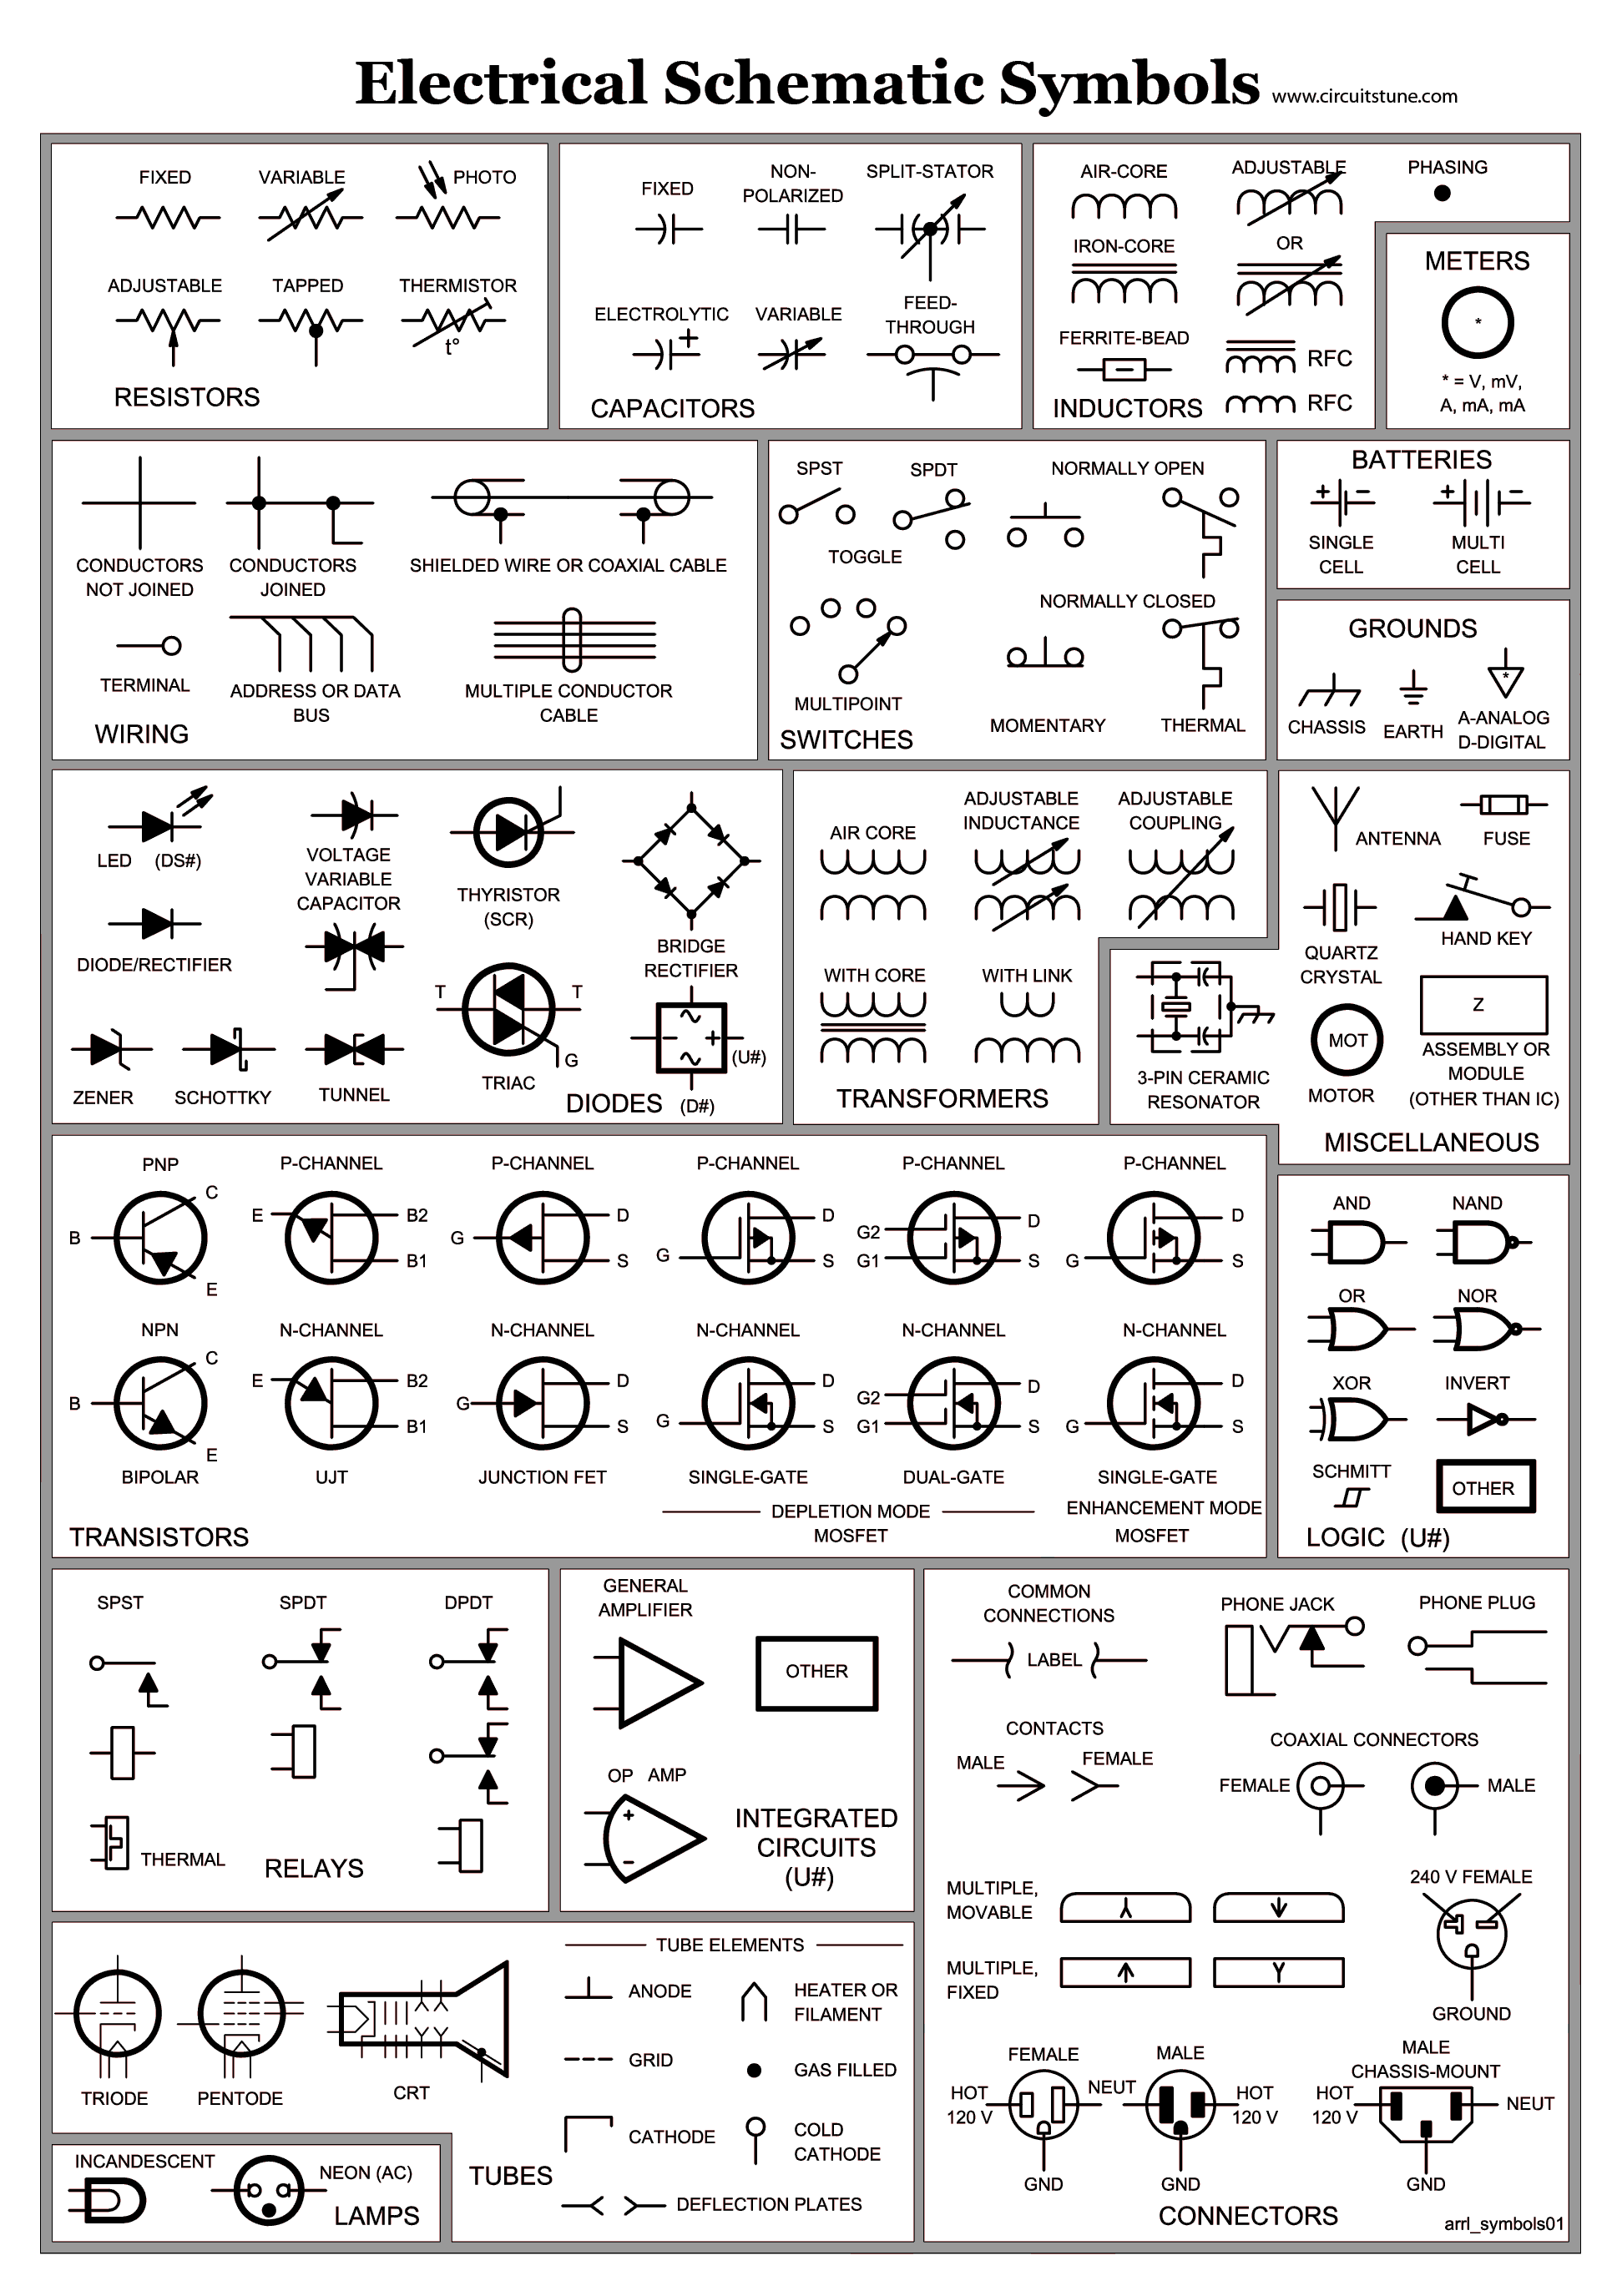 a65d176364692d2ebe913b58a654cfc3 electrical schematic symbols wire diagram symbols automotive electrical schematic diagrams at gsmportal.co